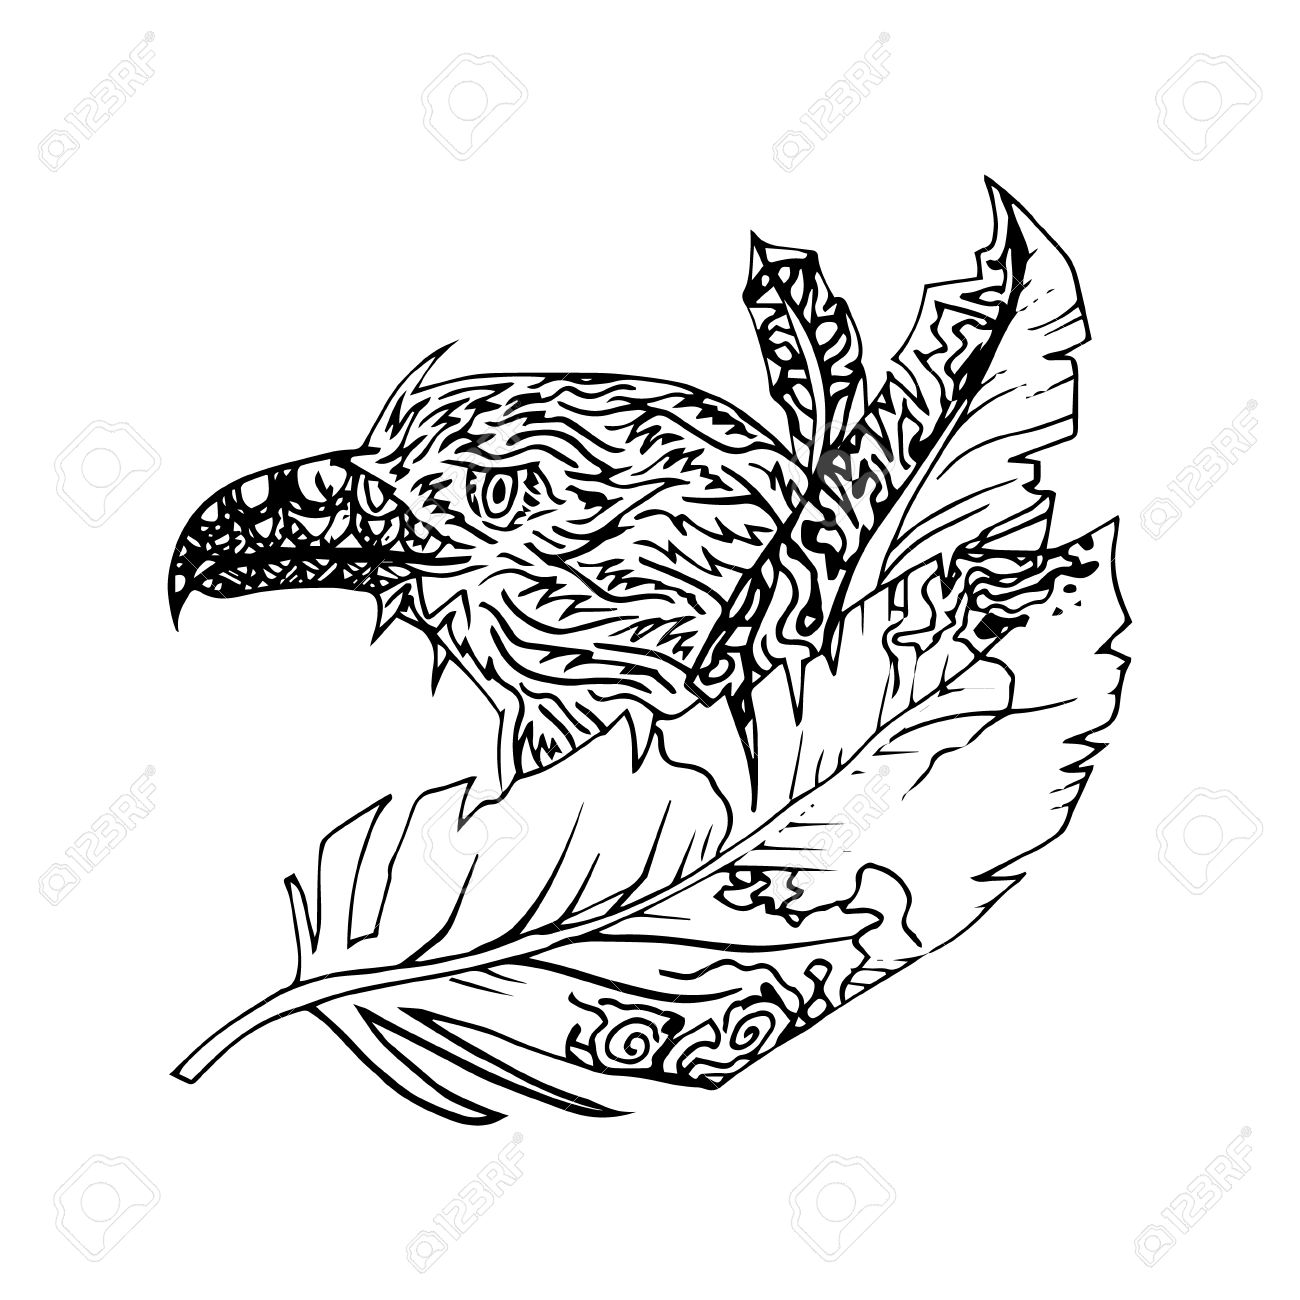 1300x1300 Black And White Eagle Isolated. Engraving Sketch. Abstract Vector